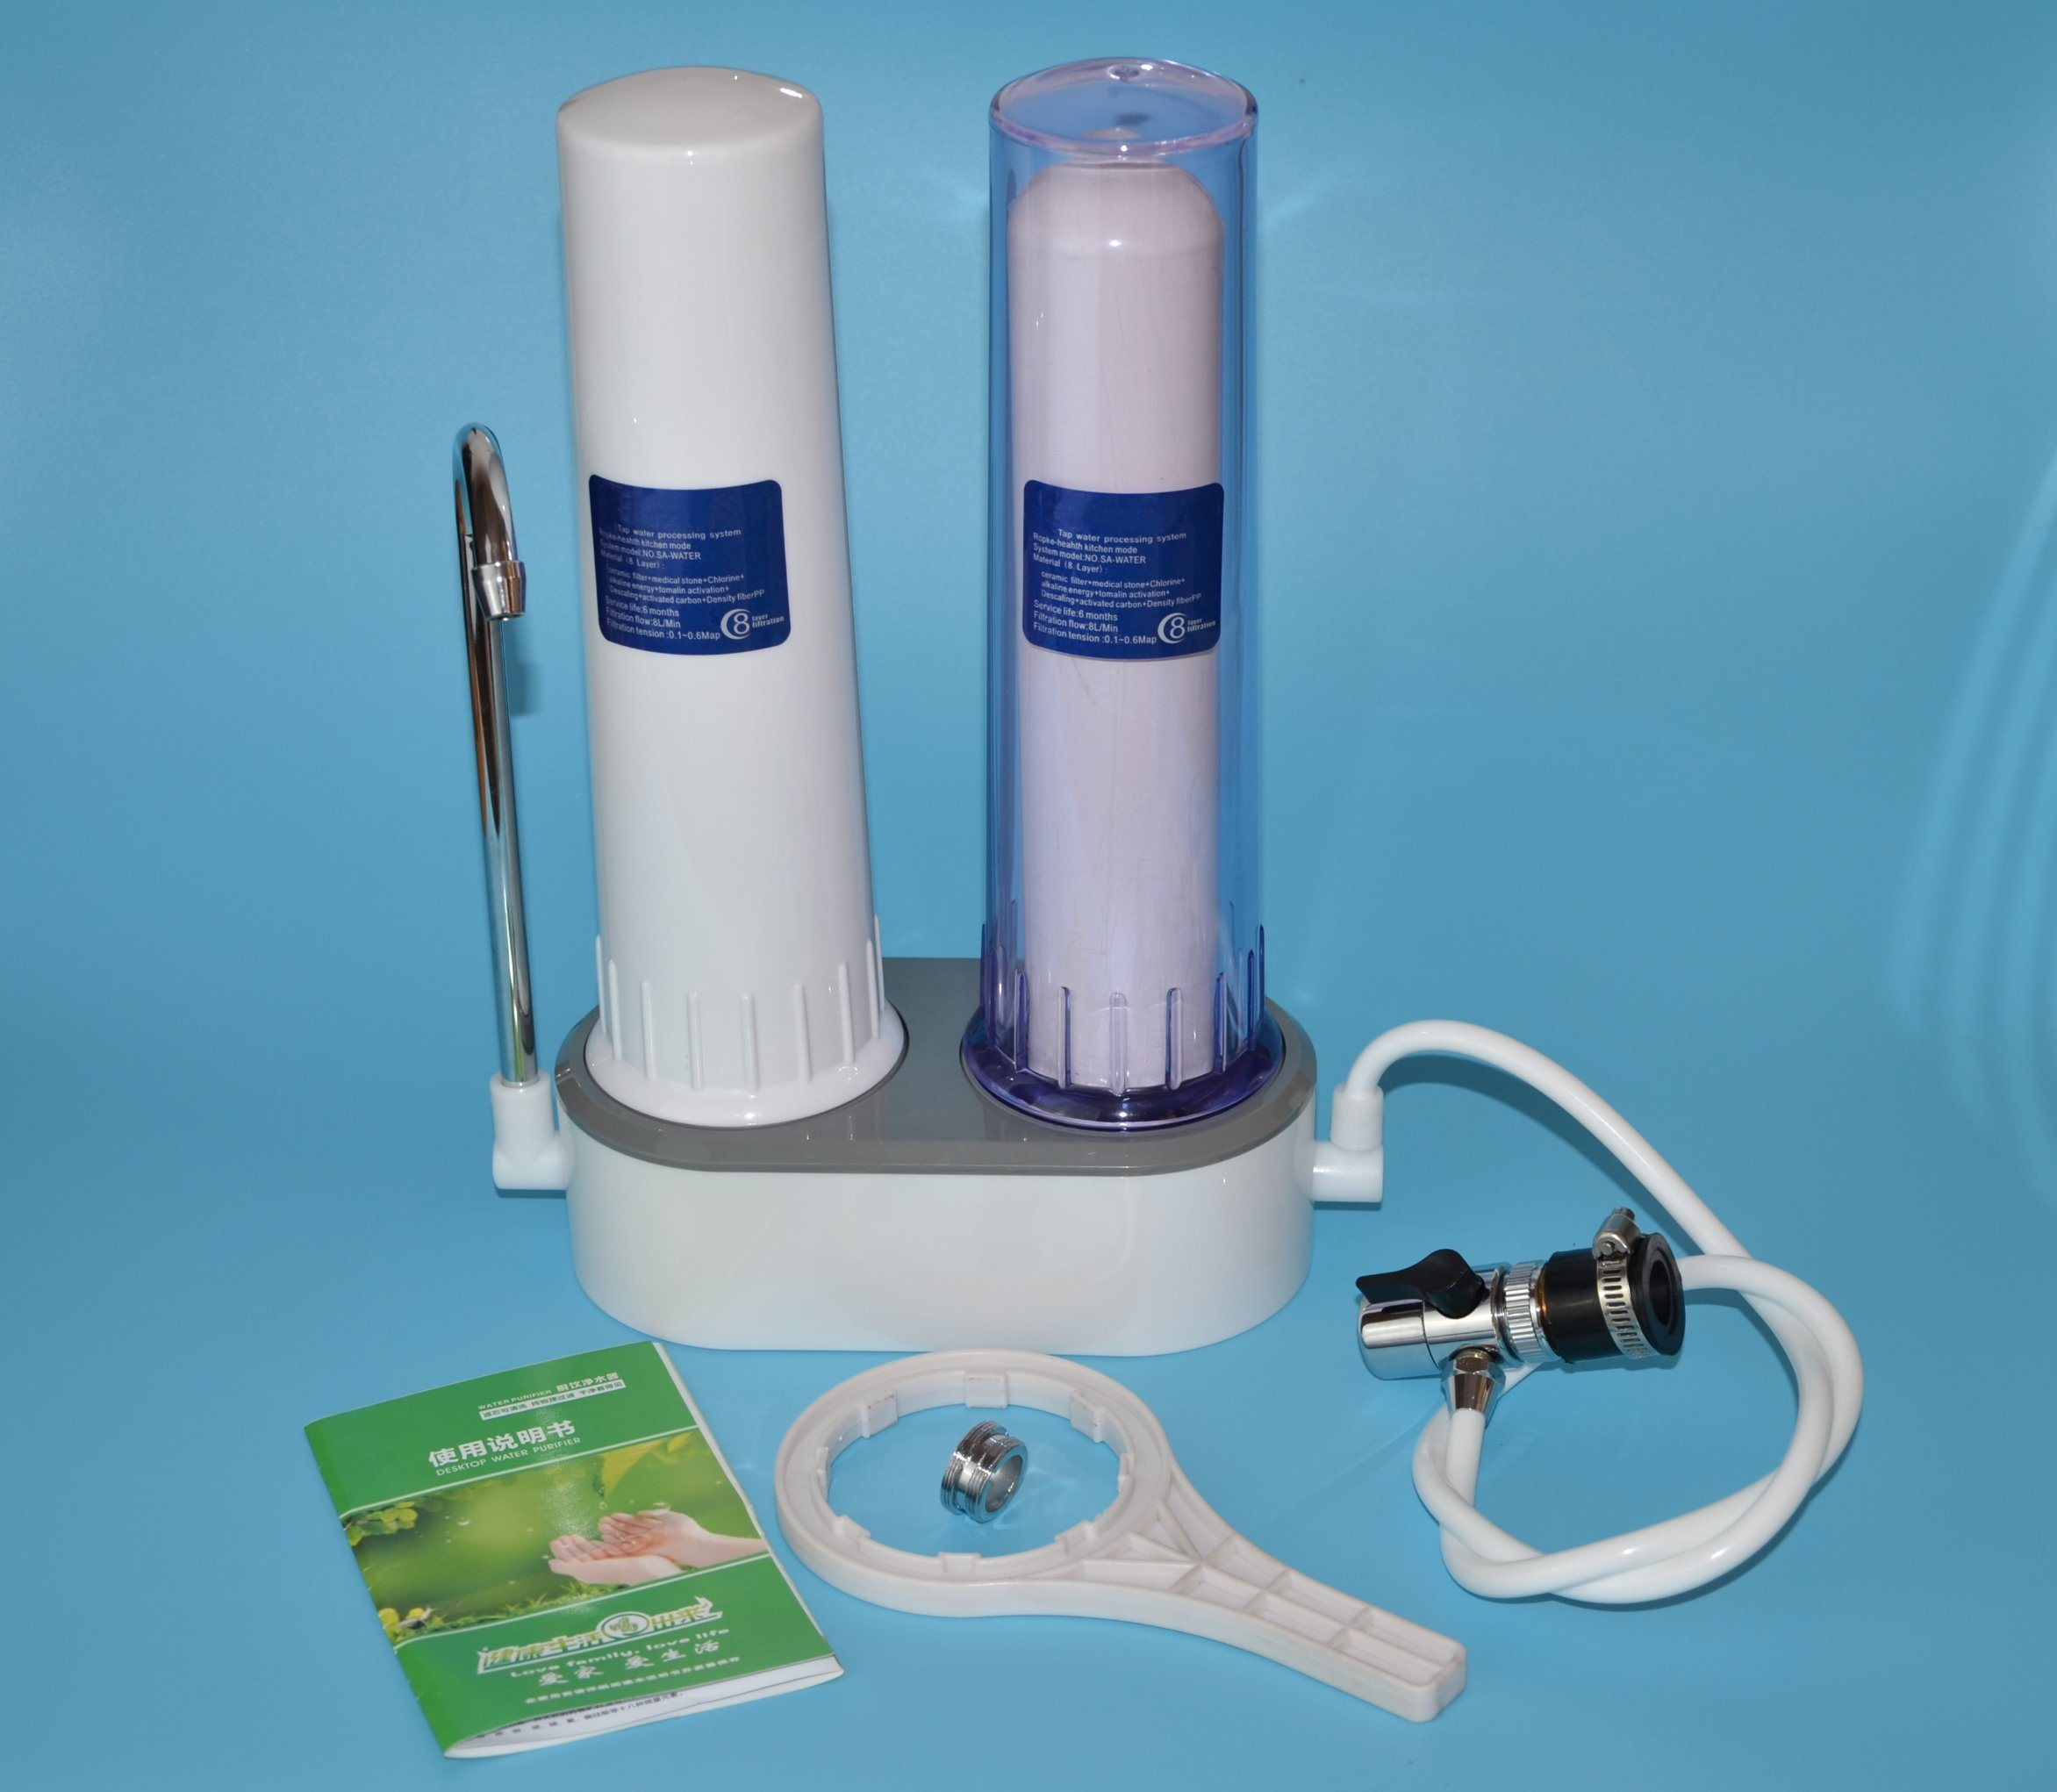 China Countertop Dual Stage Water Filter/Purifier with Ceramic ...